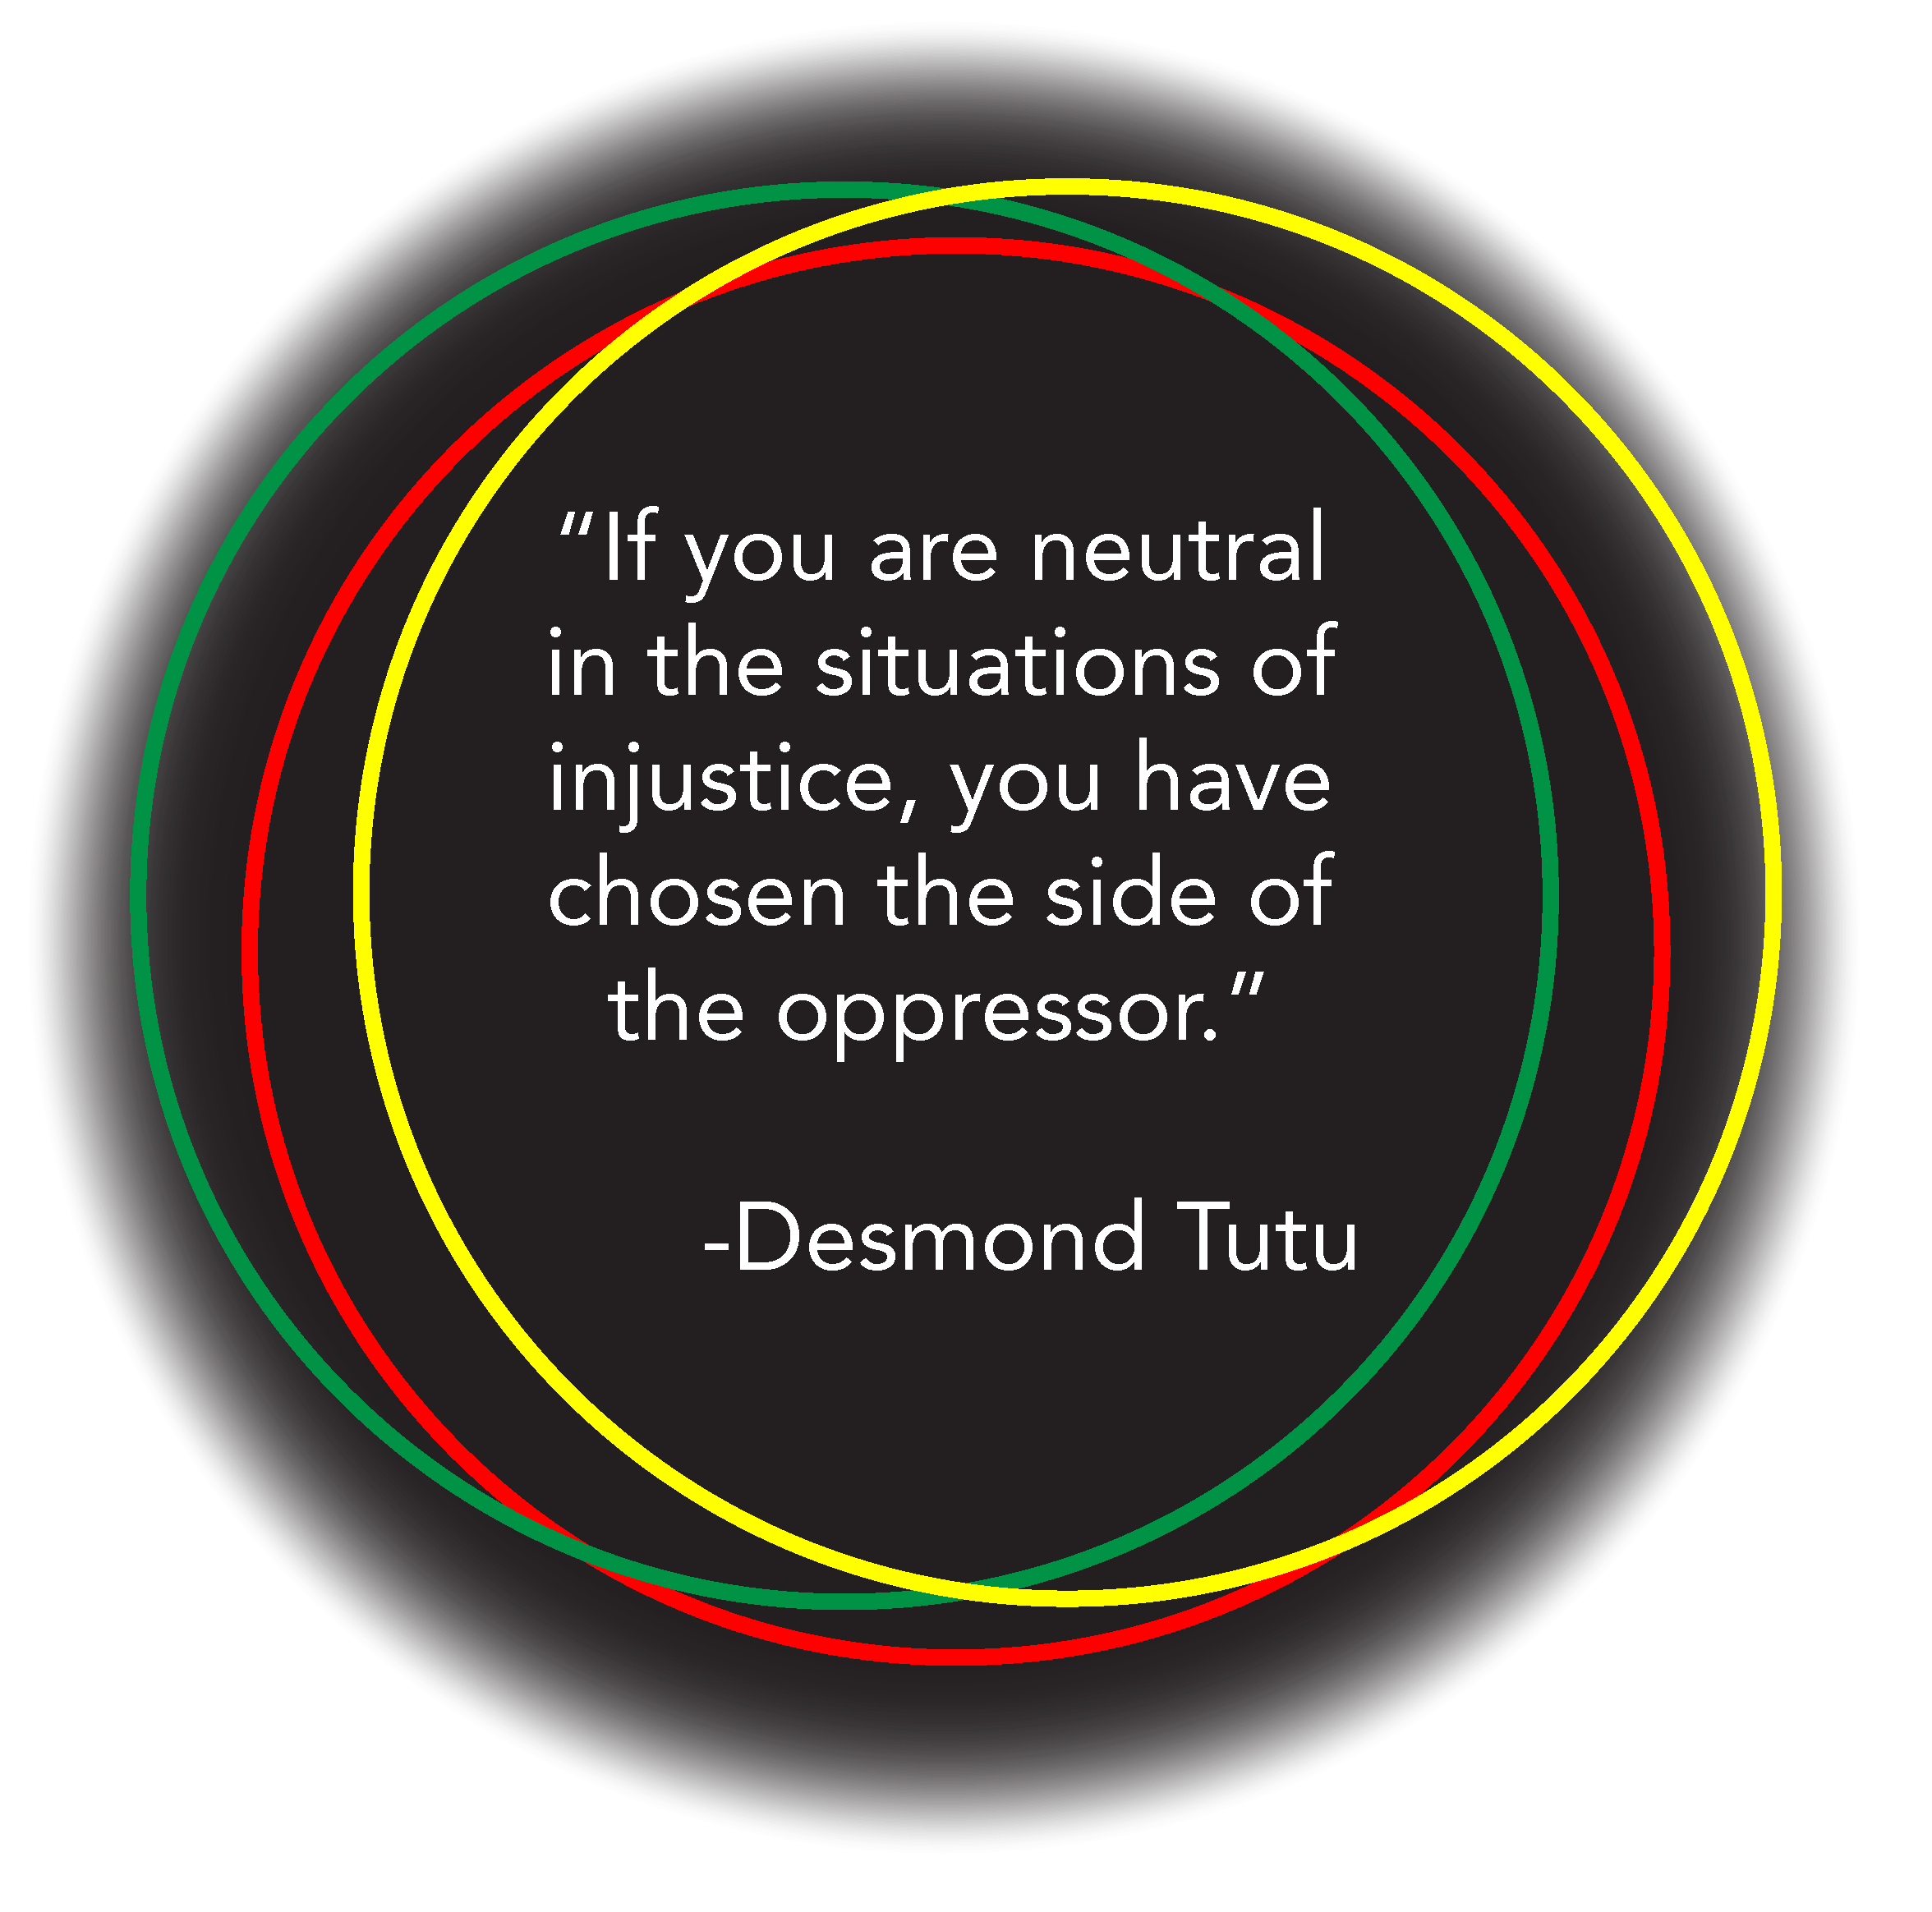 If you are neutral in the situations of injustice, you have chosen the side of the oppresor. -Desmond Tutu